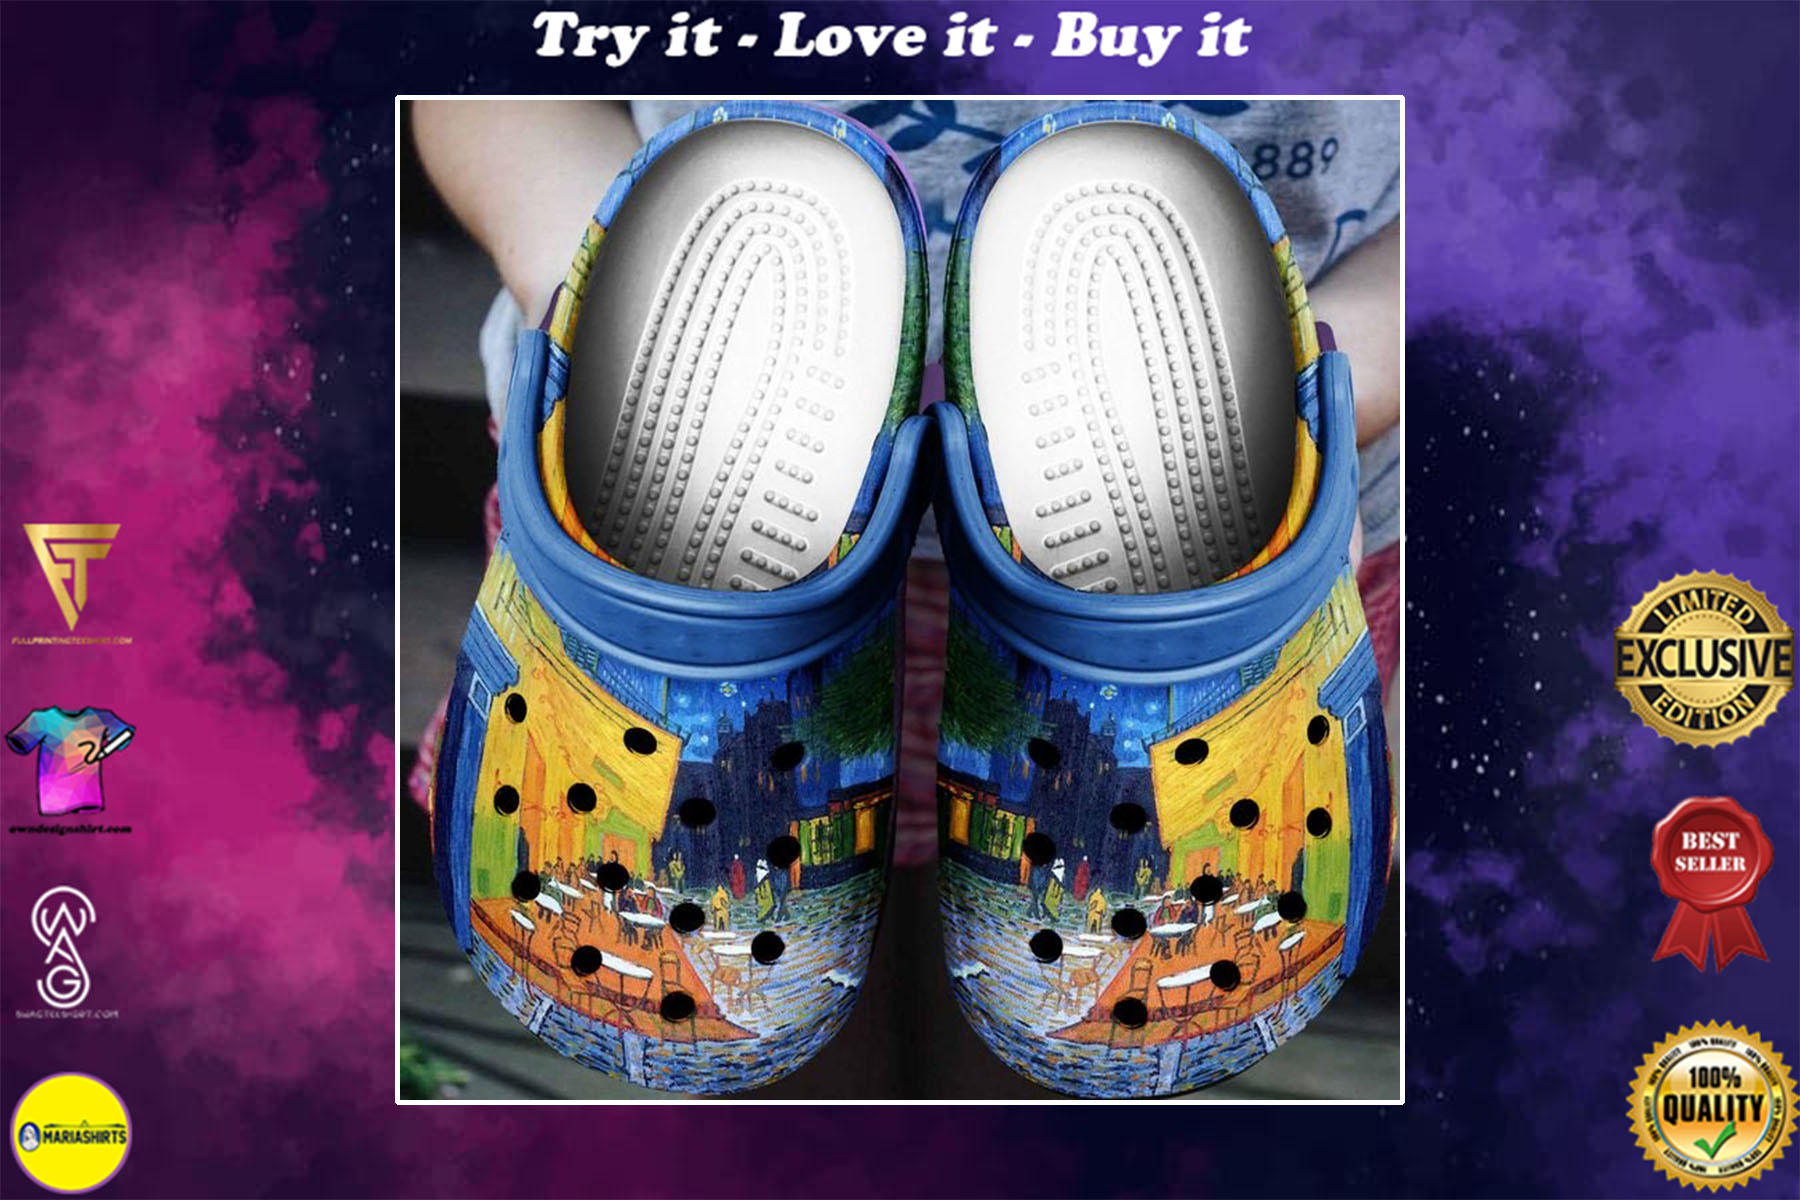 [special edition] cafe terrace at night van gogh crocs shoes - maria